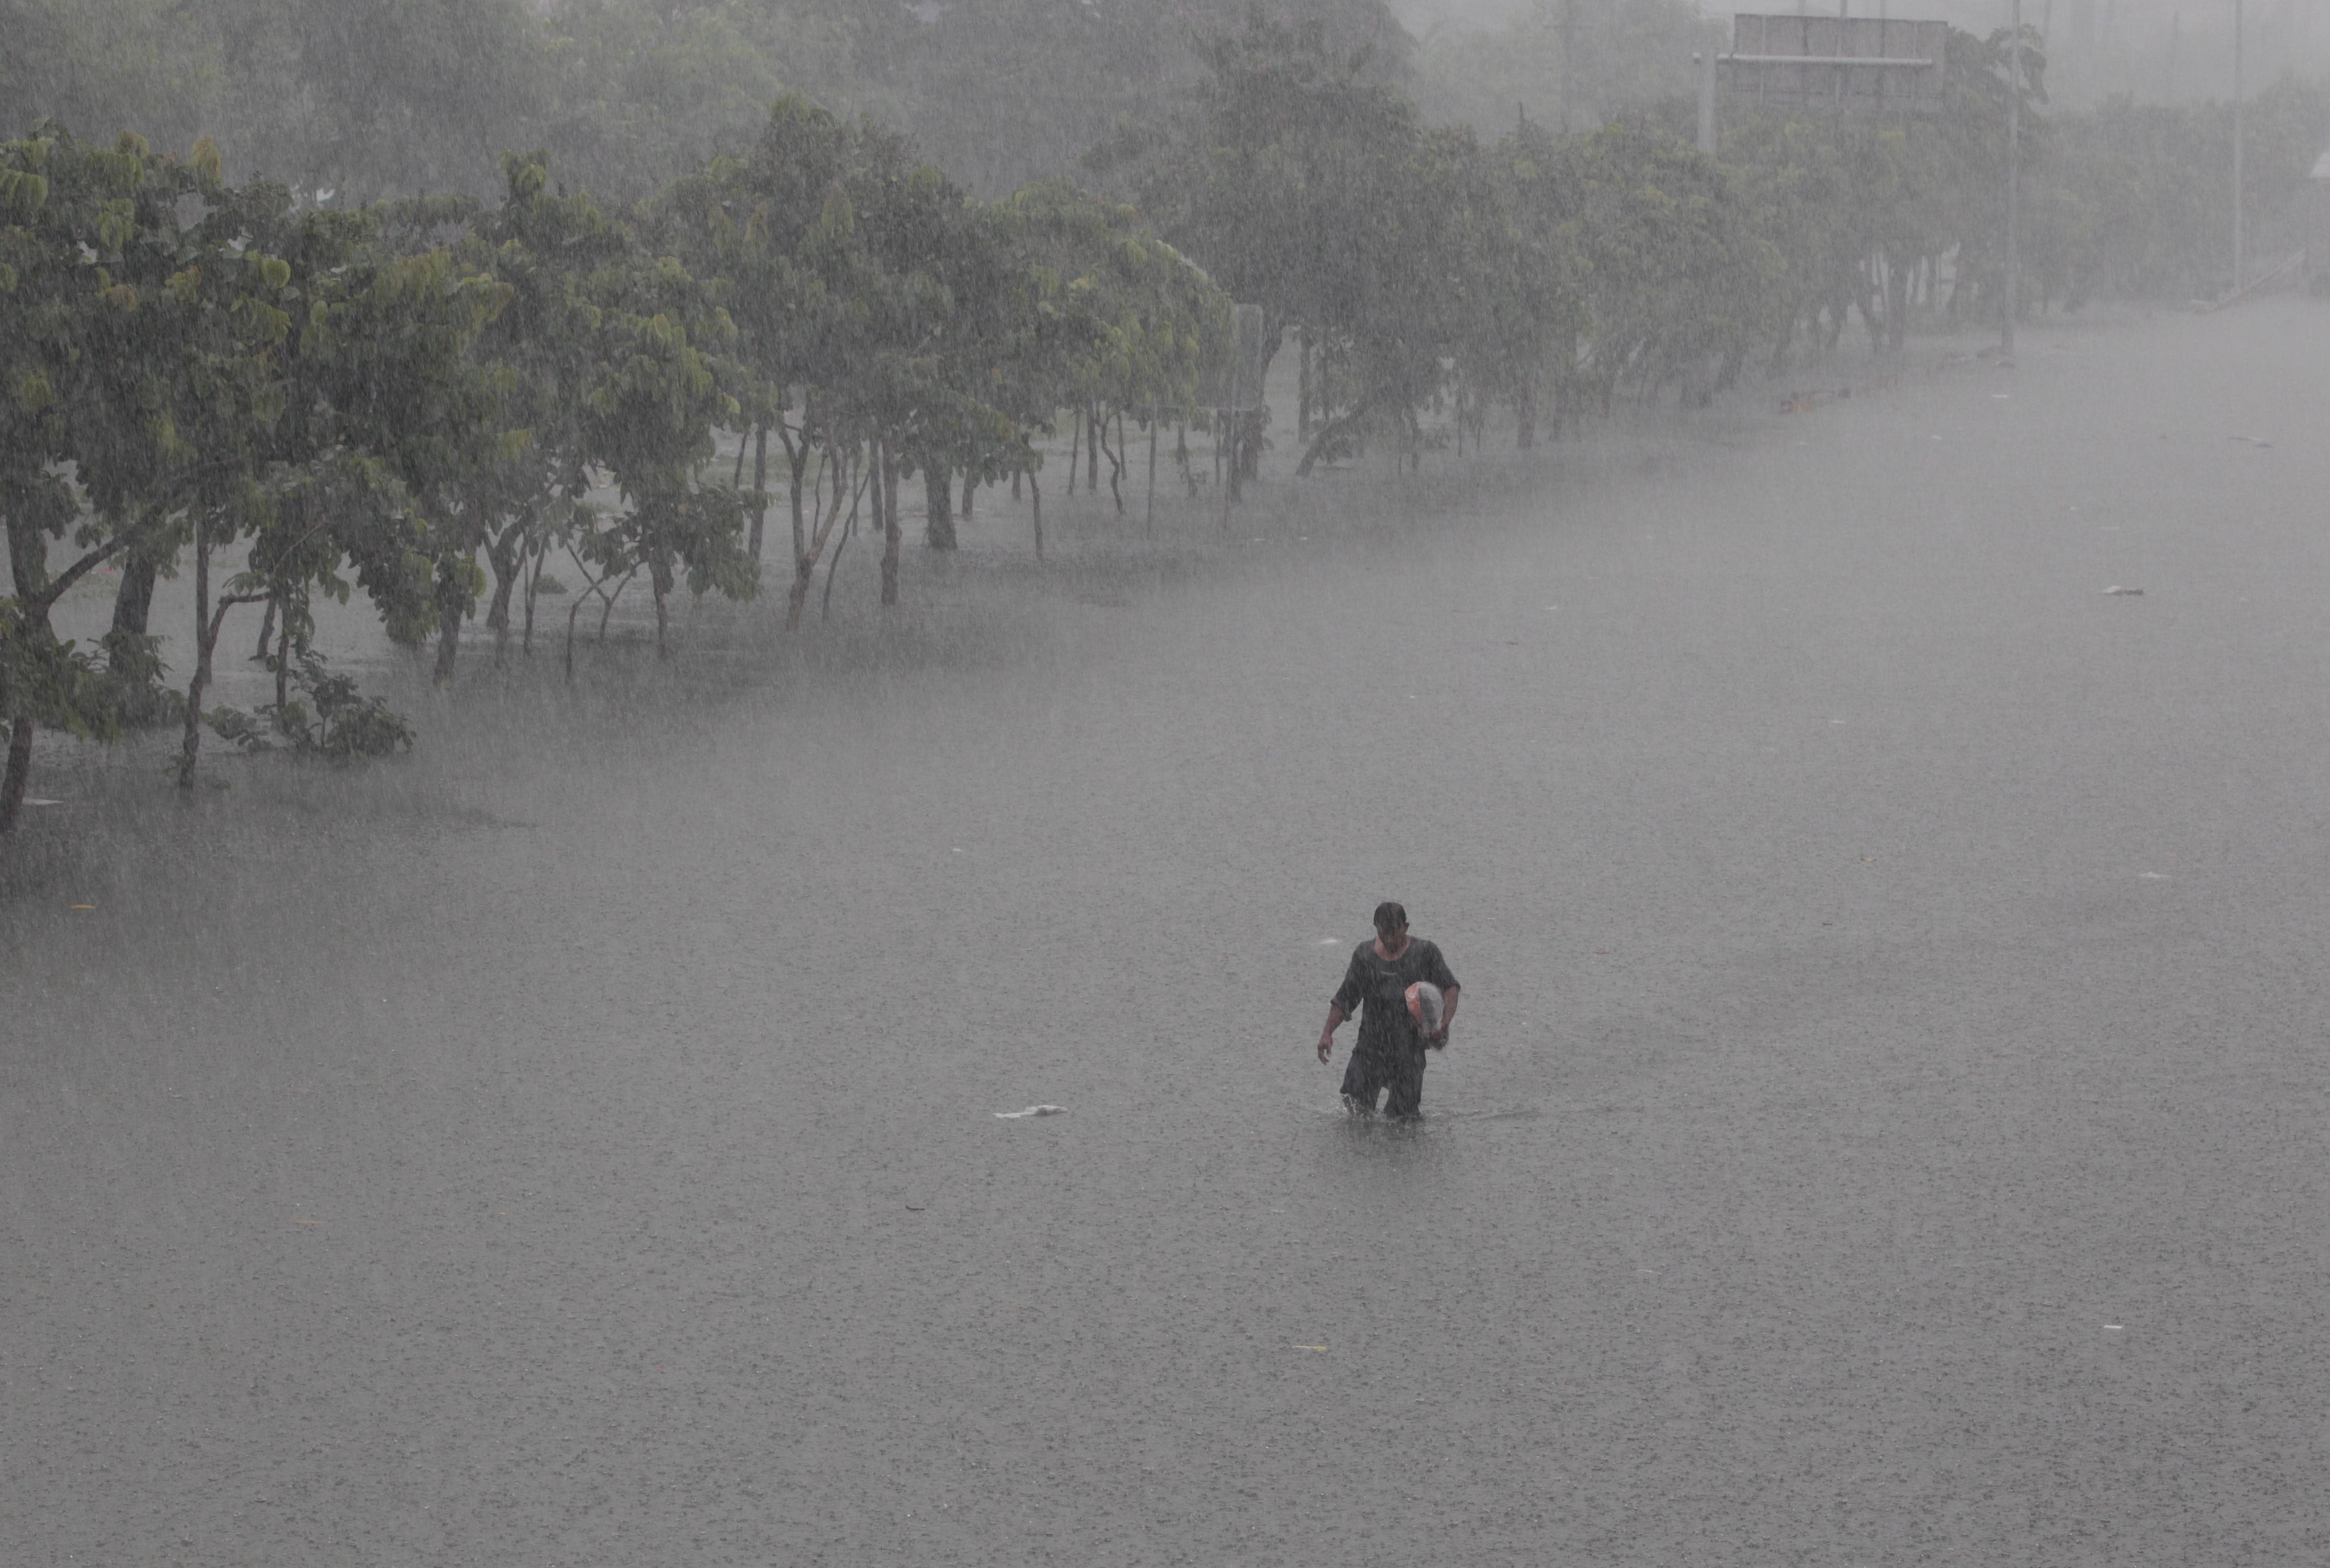 A Filipino man crosses a flooded highway at the financial district of Makati, south of Manila, Philippines on Tuesday, Aug. 20, 2013. Flooding caused by some of the Philippines' heaviest rains on record submerged more than half the capital Tuesday, turning roads into rivers and trapping tens of thousands of people in homes and shelters. The government suspended all work except rescues and disaster response for a second day. (AP Photo/Aaron Favila)